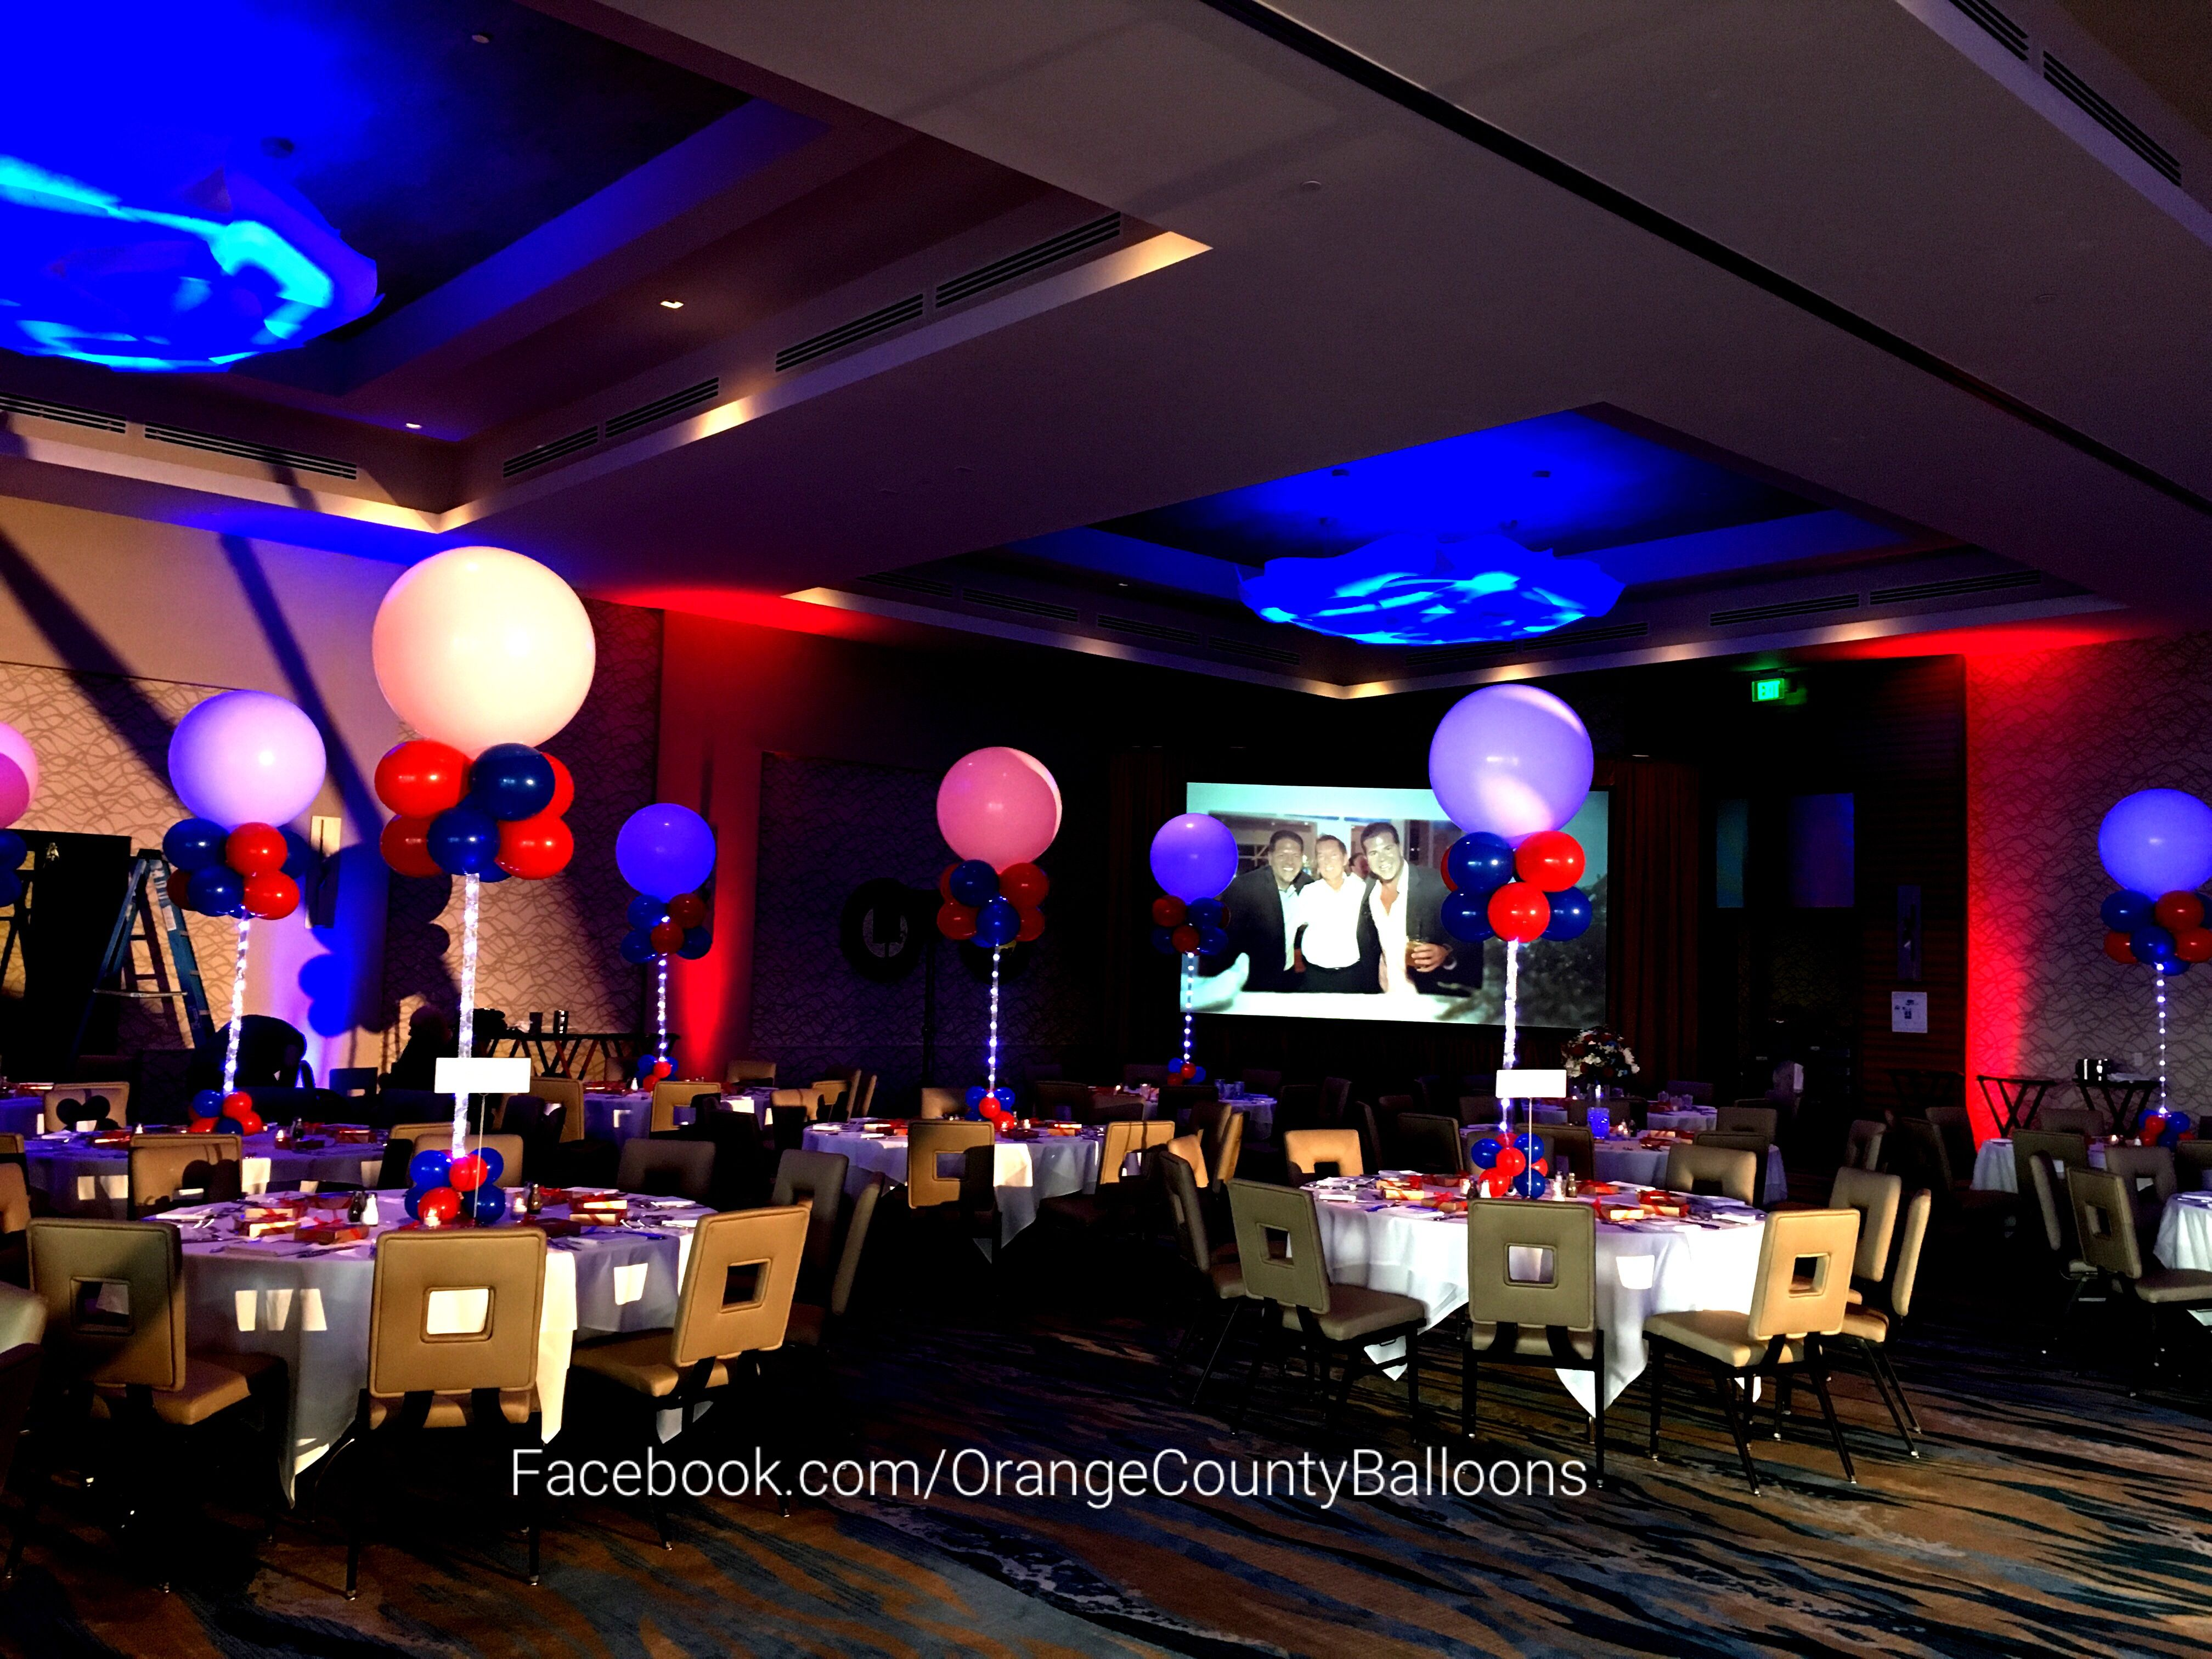 Lighted 3' balloon centerpieces w lighted ribbon. www.facebook.com/OrangeCountyBalloons